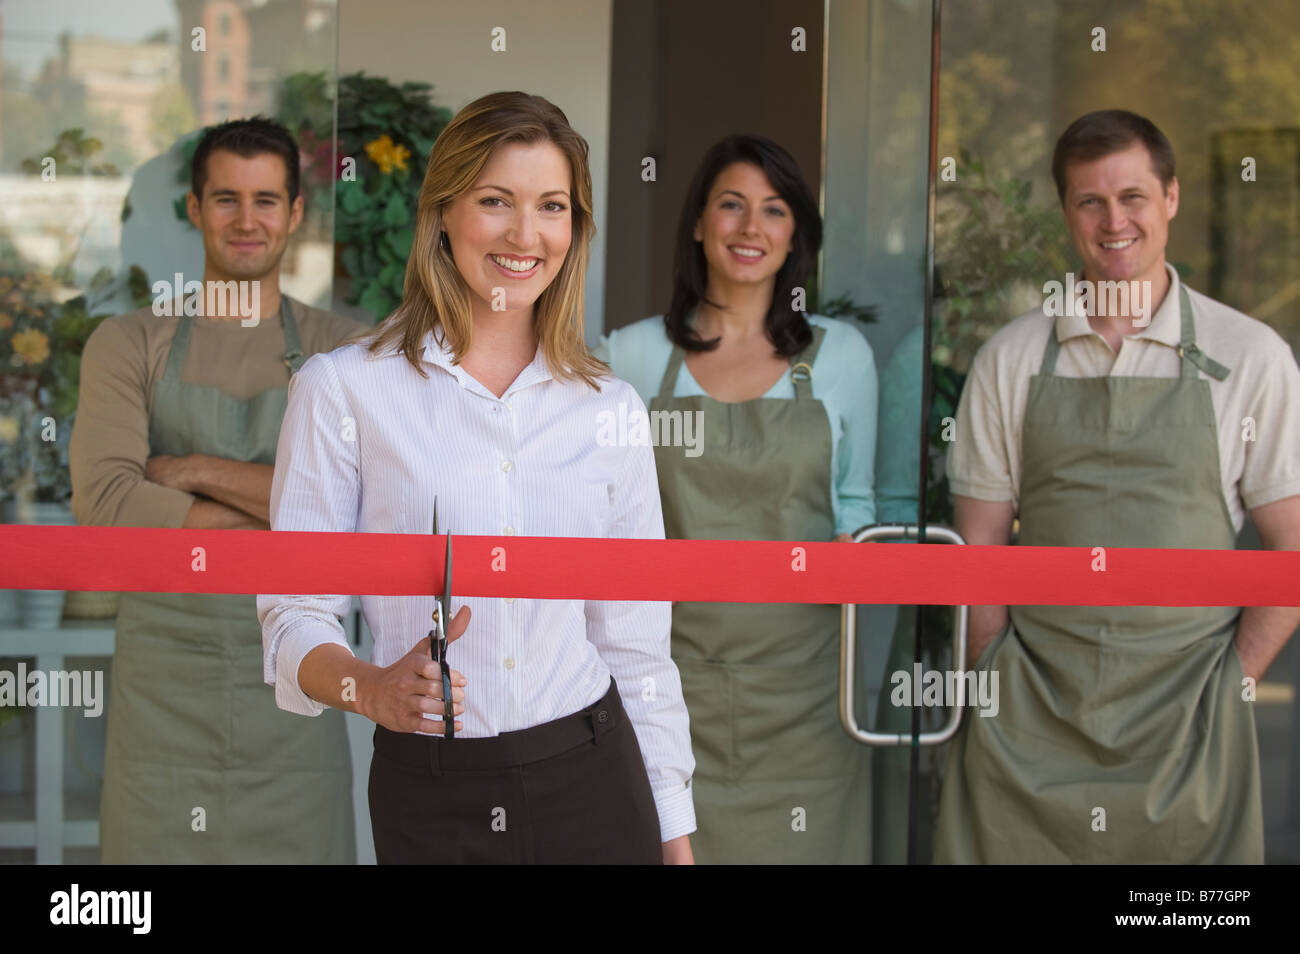 Small business owner cutting red ribbon grand opening - Stock Image